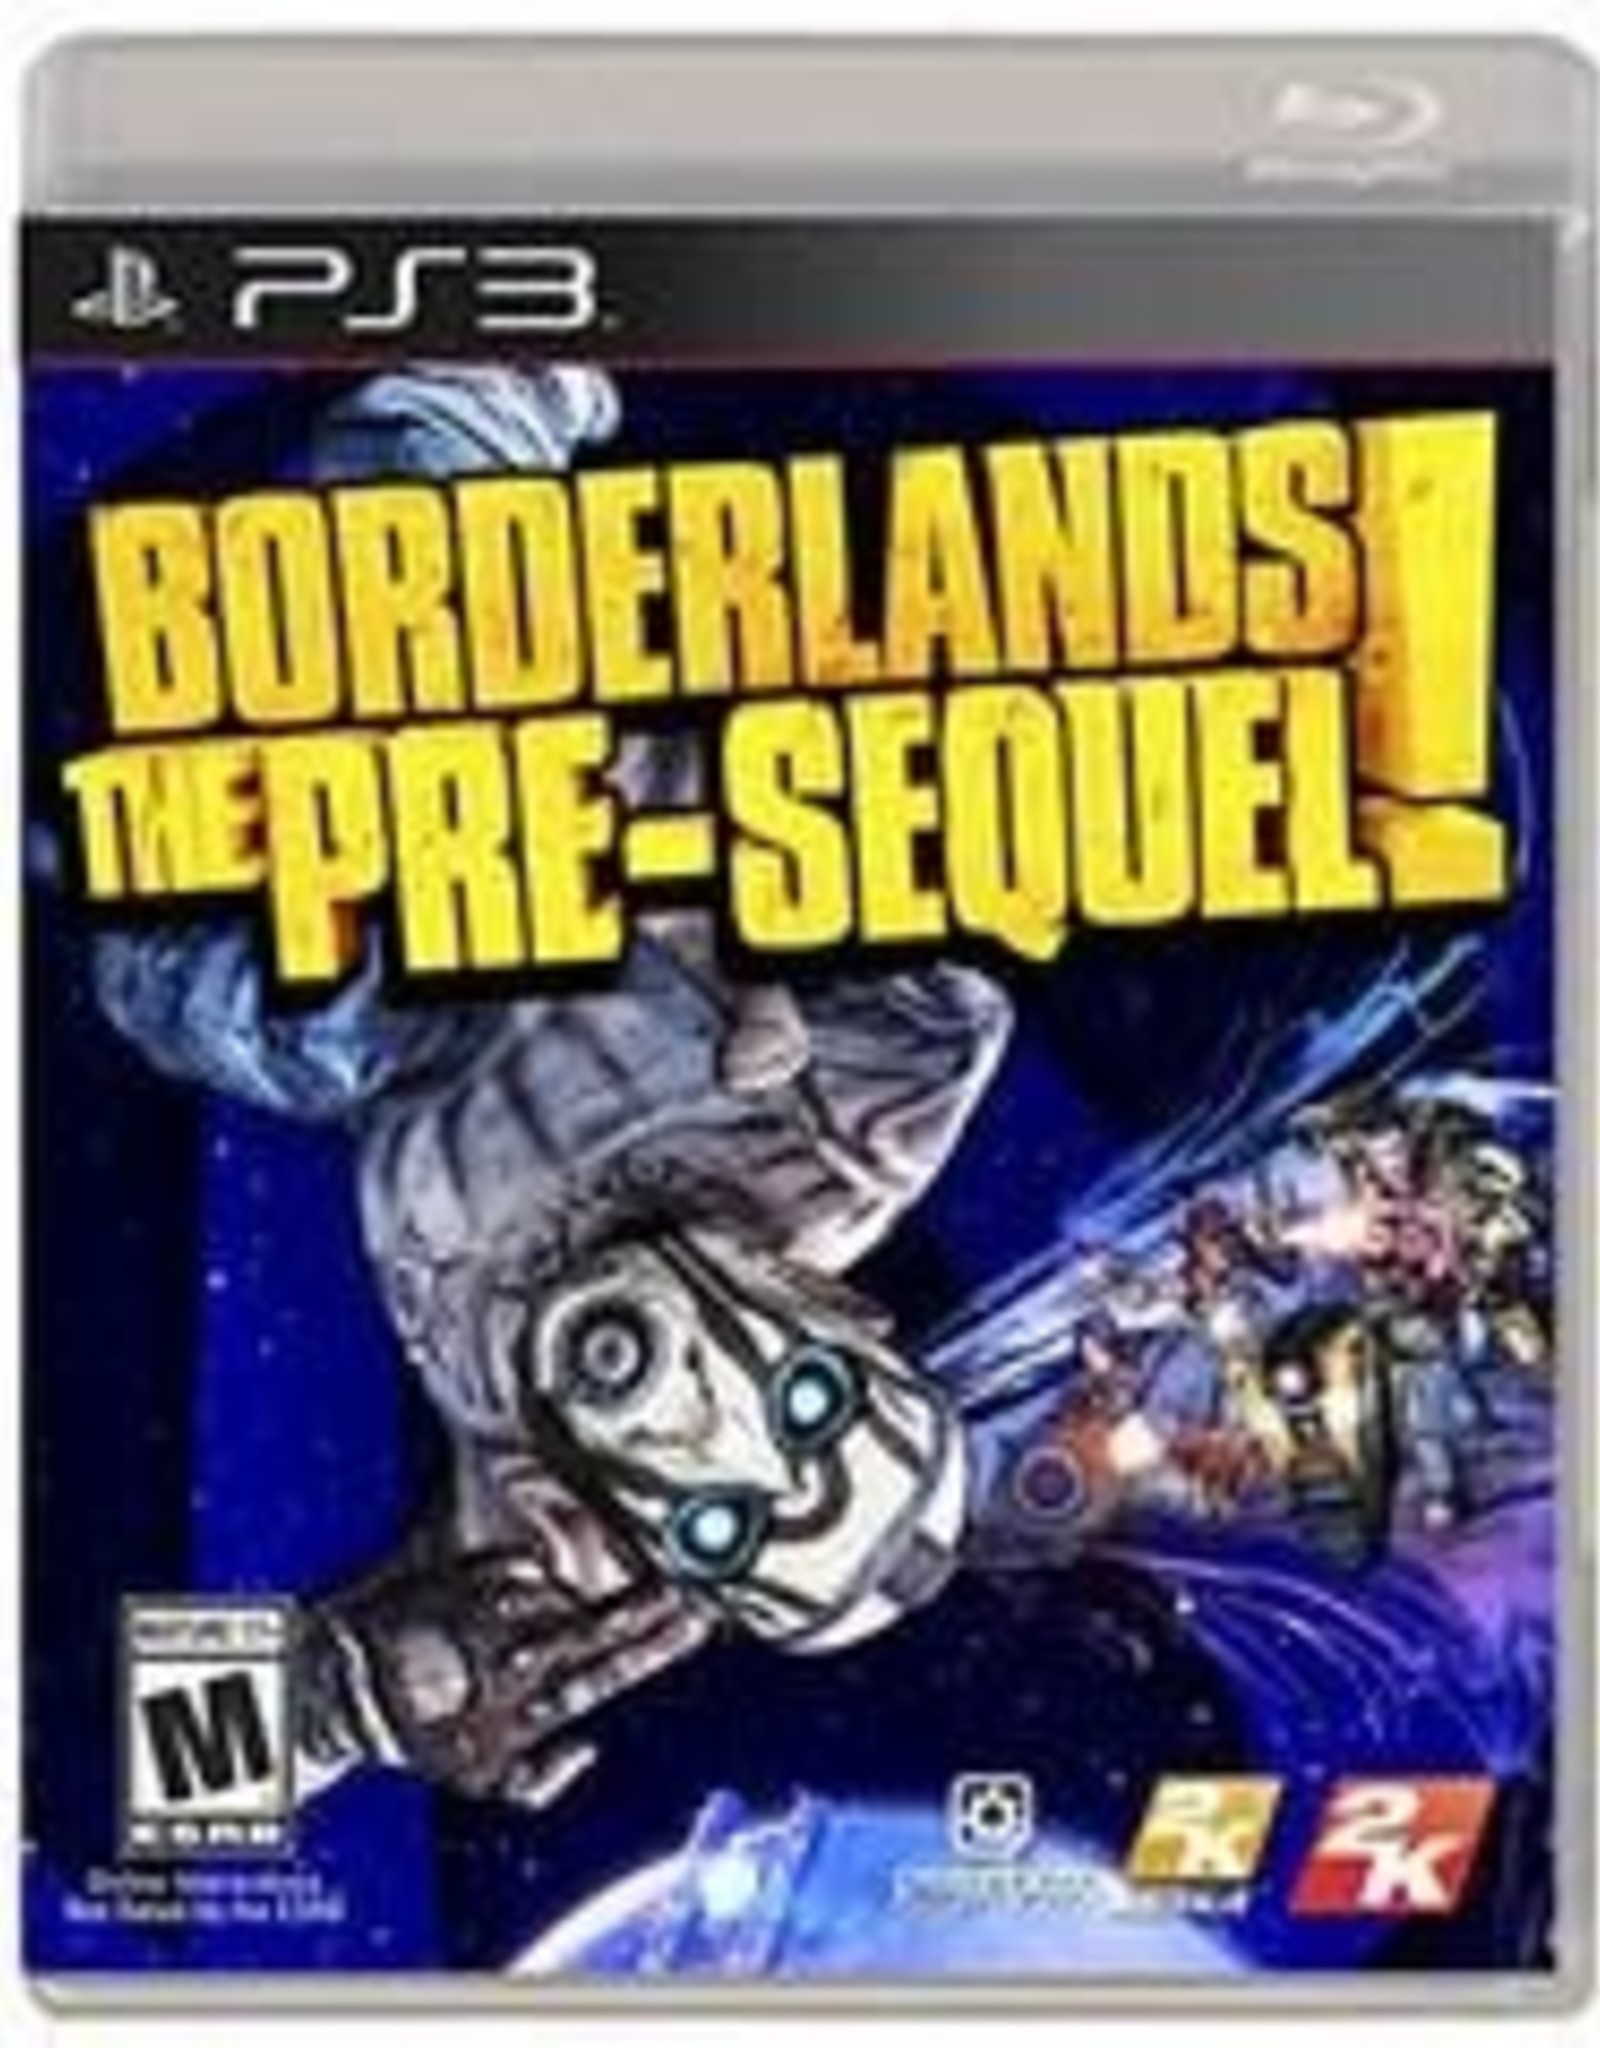 Playstation 3 Borderlands The Pre-Sequel